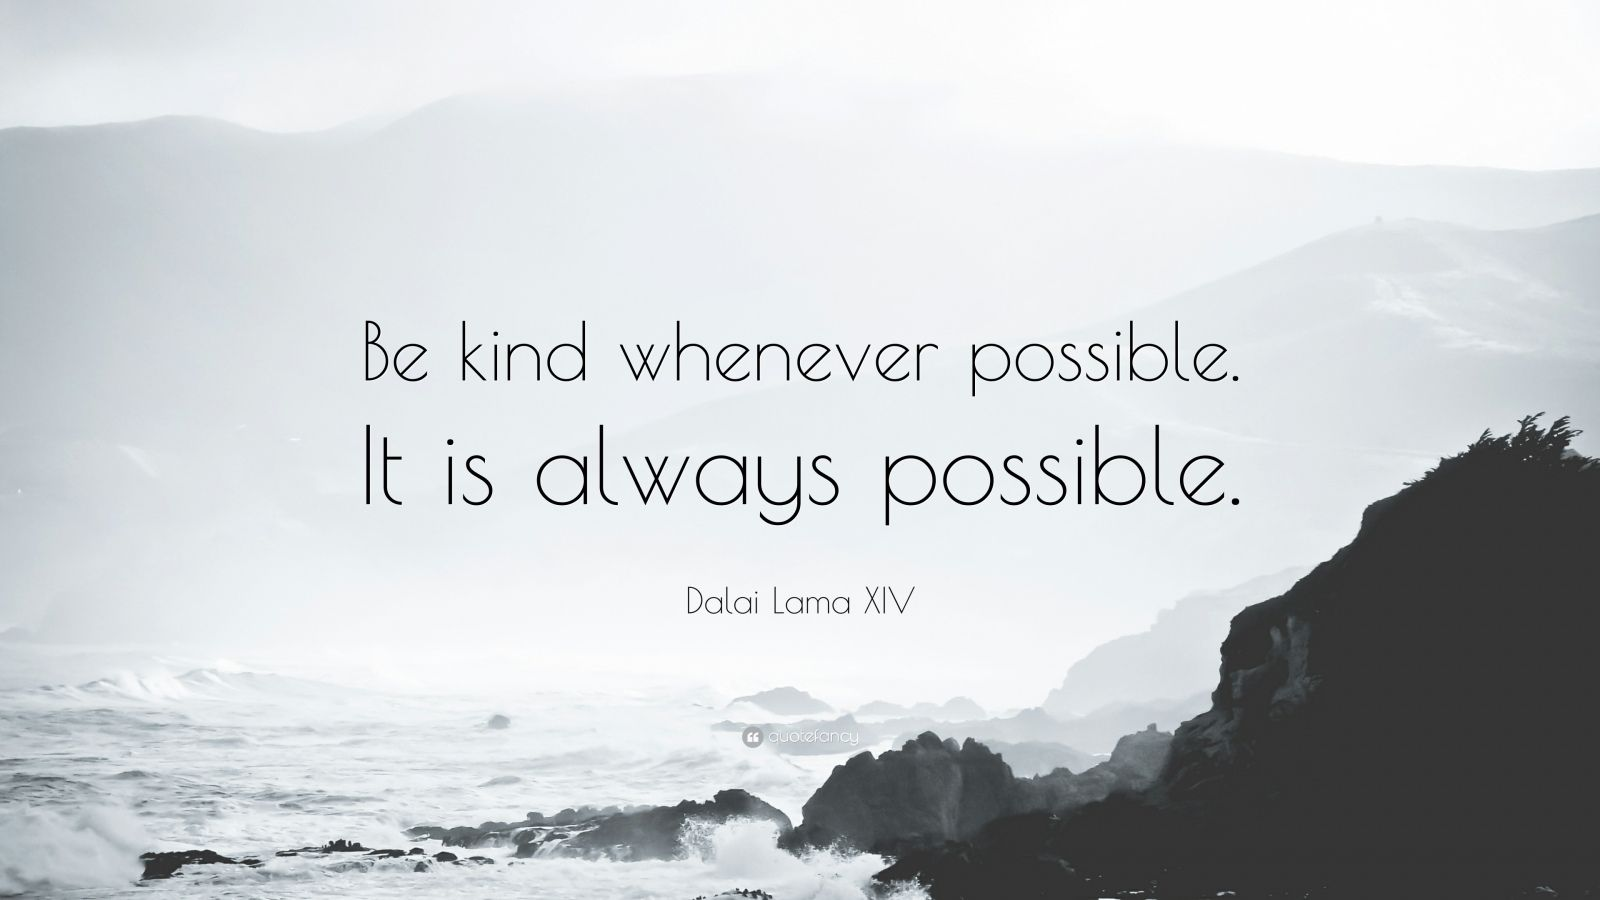 Dalai Lama Quotes Wallpapers Dalai Lama Xiv Quote Be Kind Whenever Possible It Is